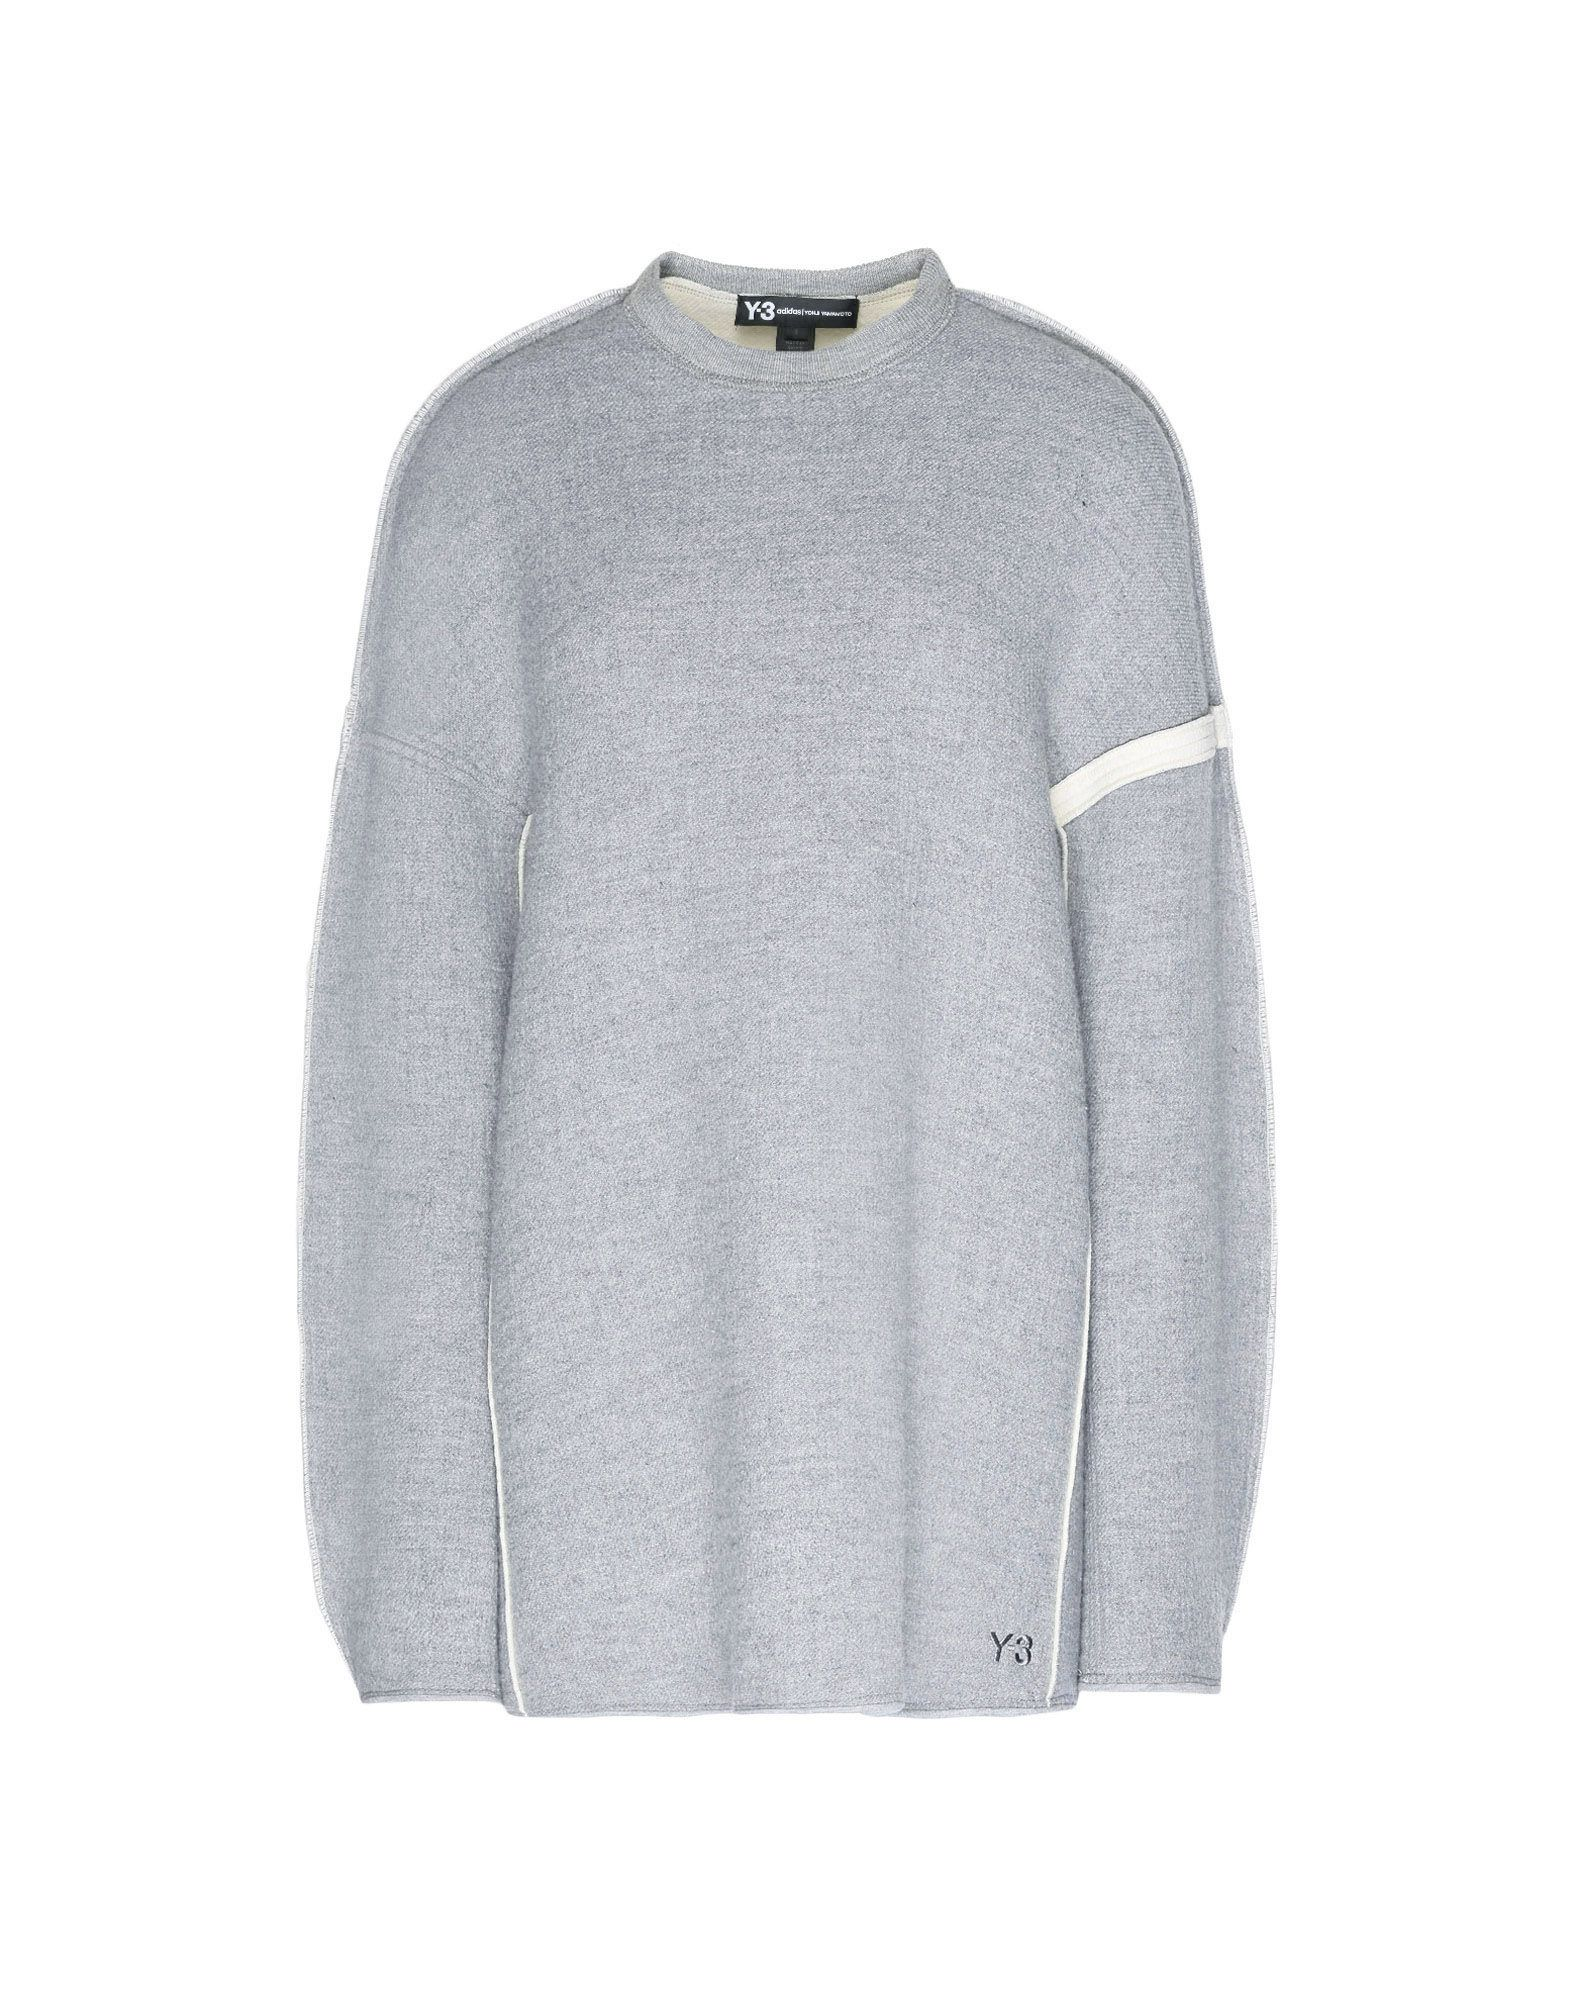 Y-3 Y-3 Oversize Spacer Wool Sweater スウェット レディース f